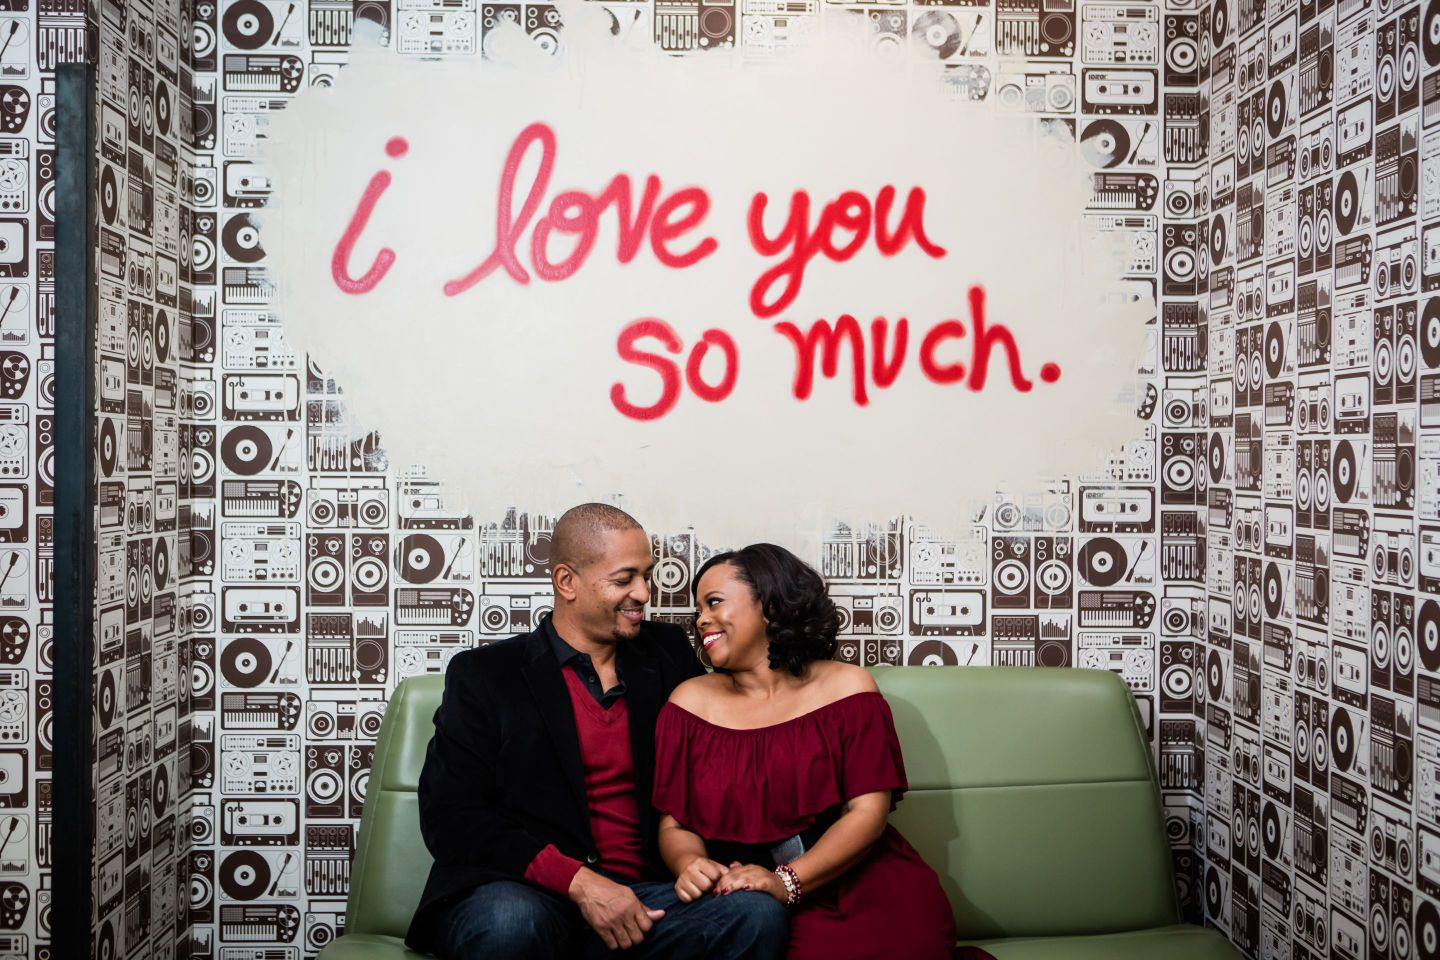 414Punchbowl-356-1440x960 Black Owned Date Night Company Gives Tips on 3 Unique Date Night Experiences